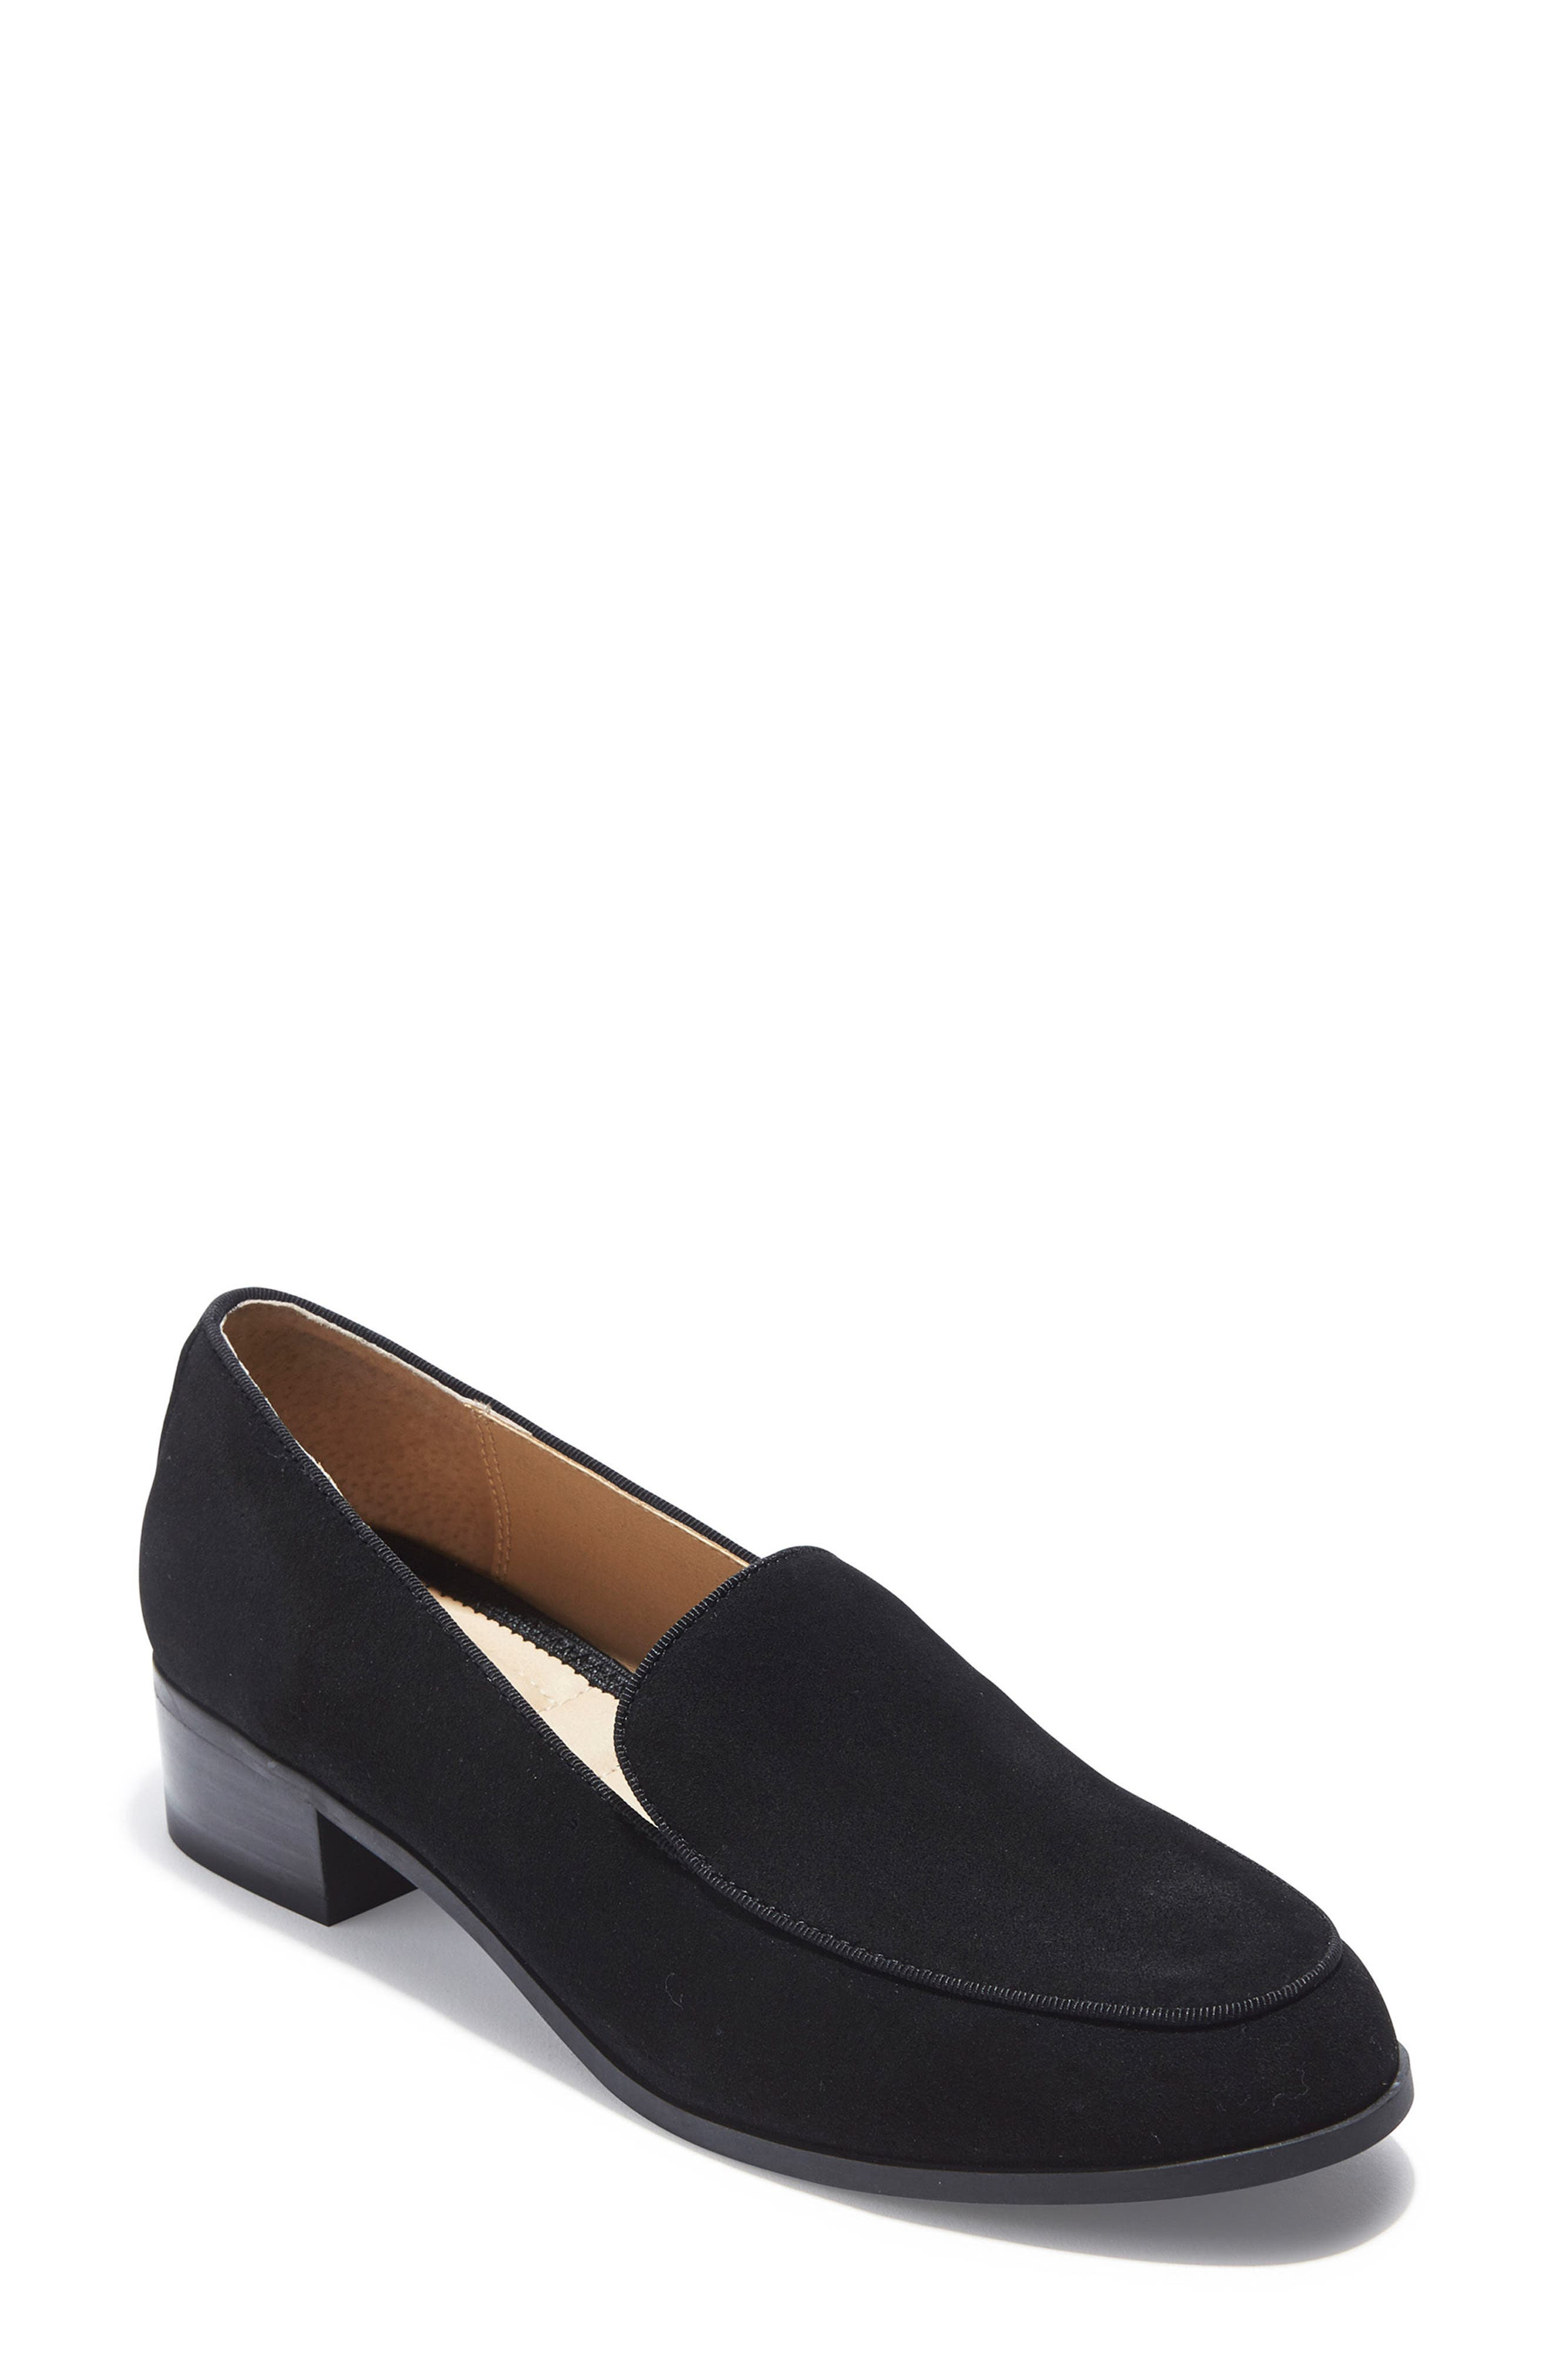 Jazzy Loafer,                         Main,                         color,